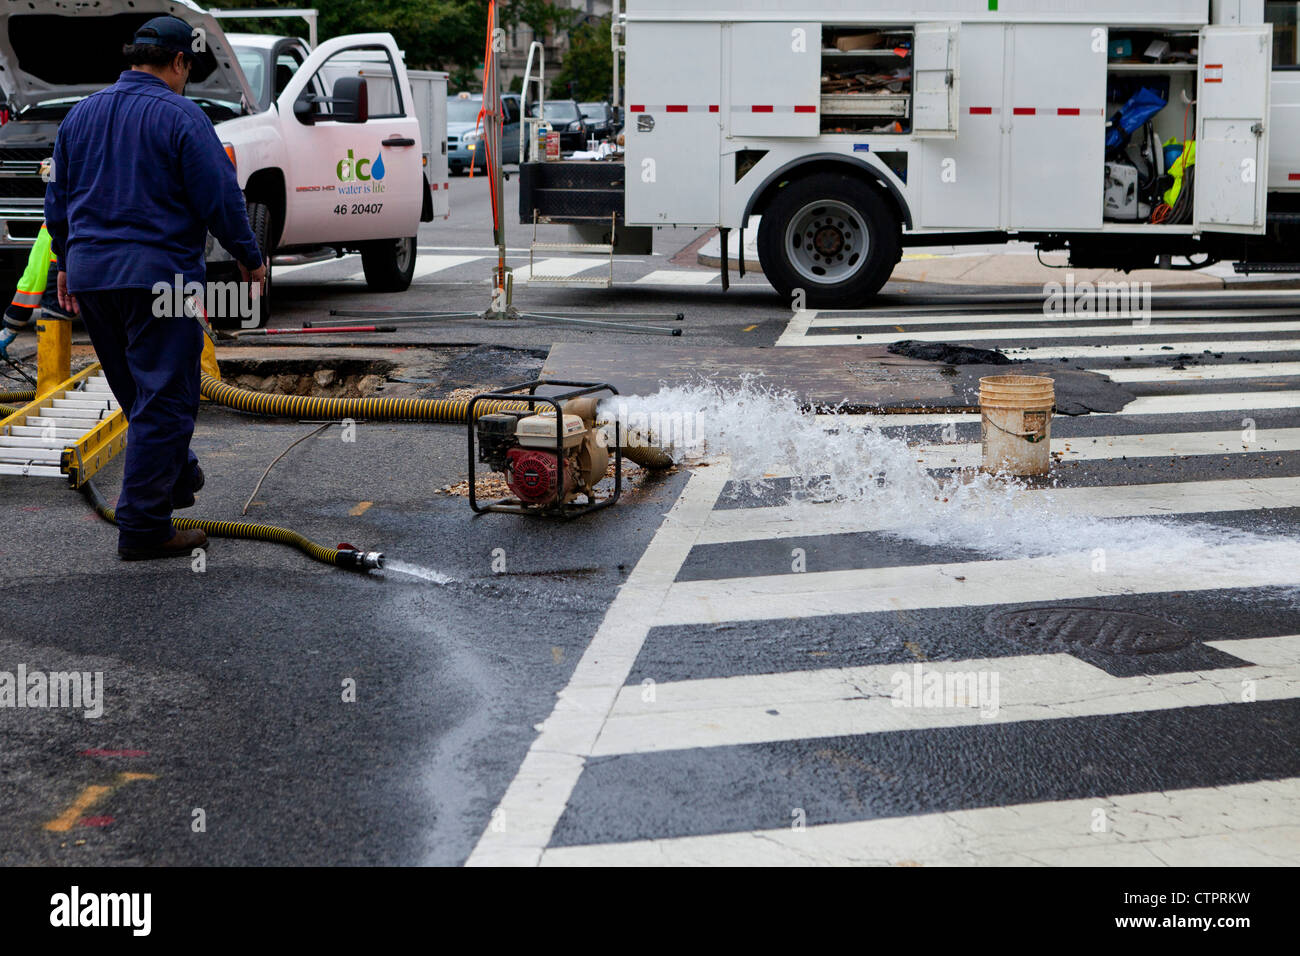 A motorized water pump used in the sewer system - Stock Image